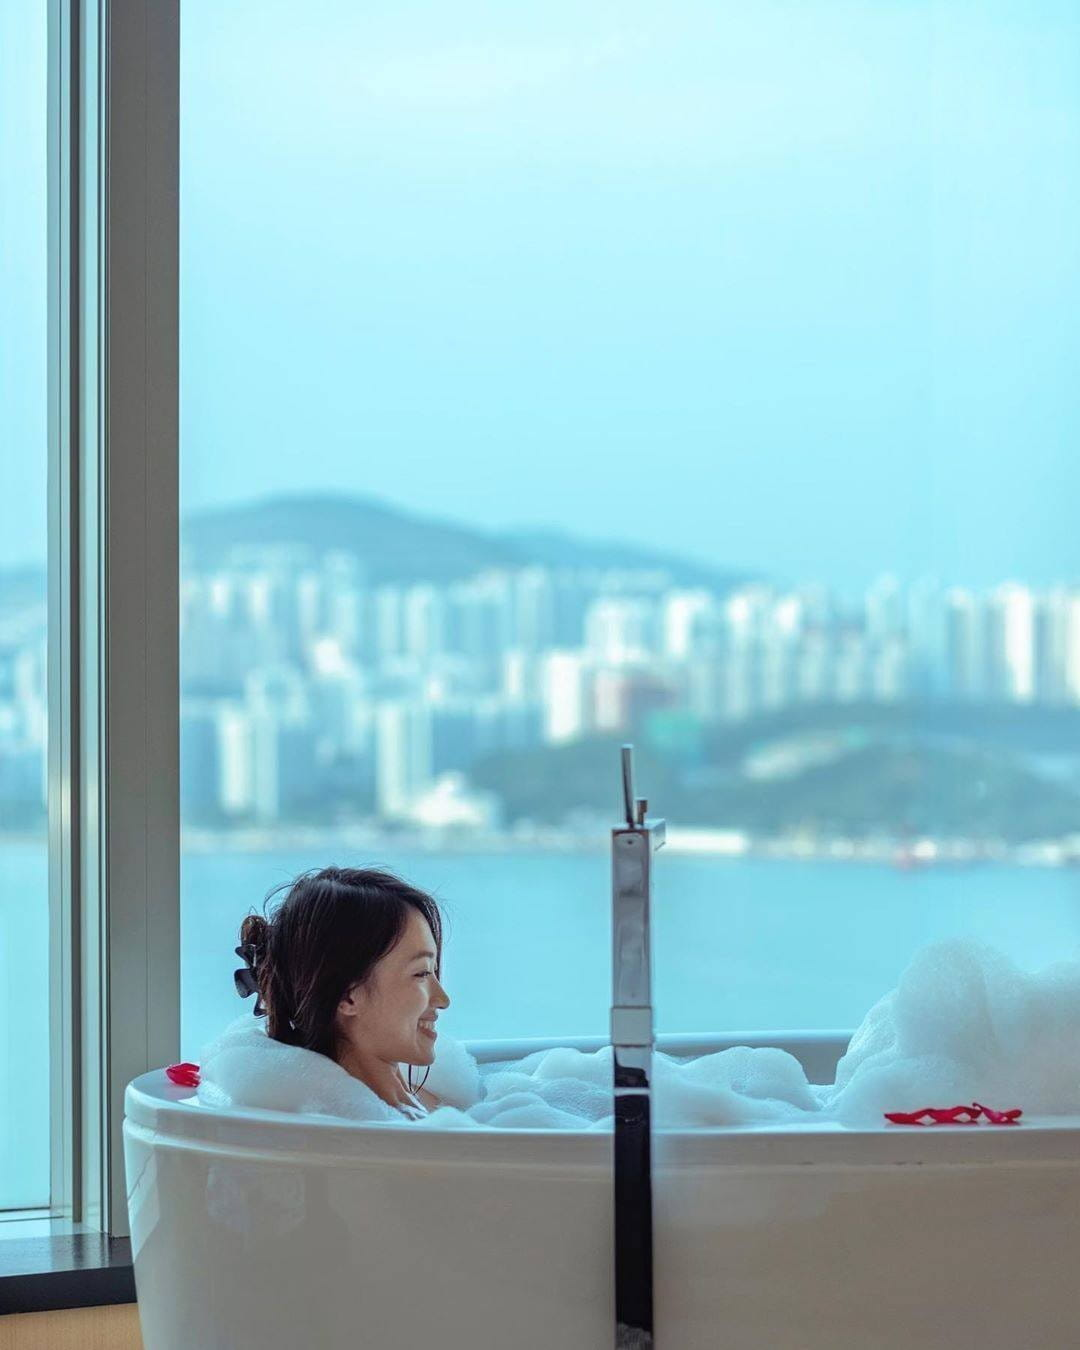 Bubble bath and stunning sea view, what else can we ask for!?  Reserve your next romantic staycation with us #atEAST  #MoreforLess #StayatEAST #EASTHongKong  📷: @vinci_tsang_823